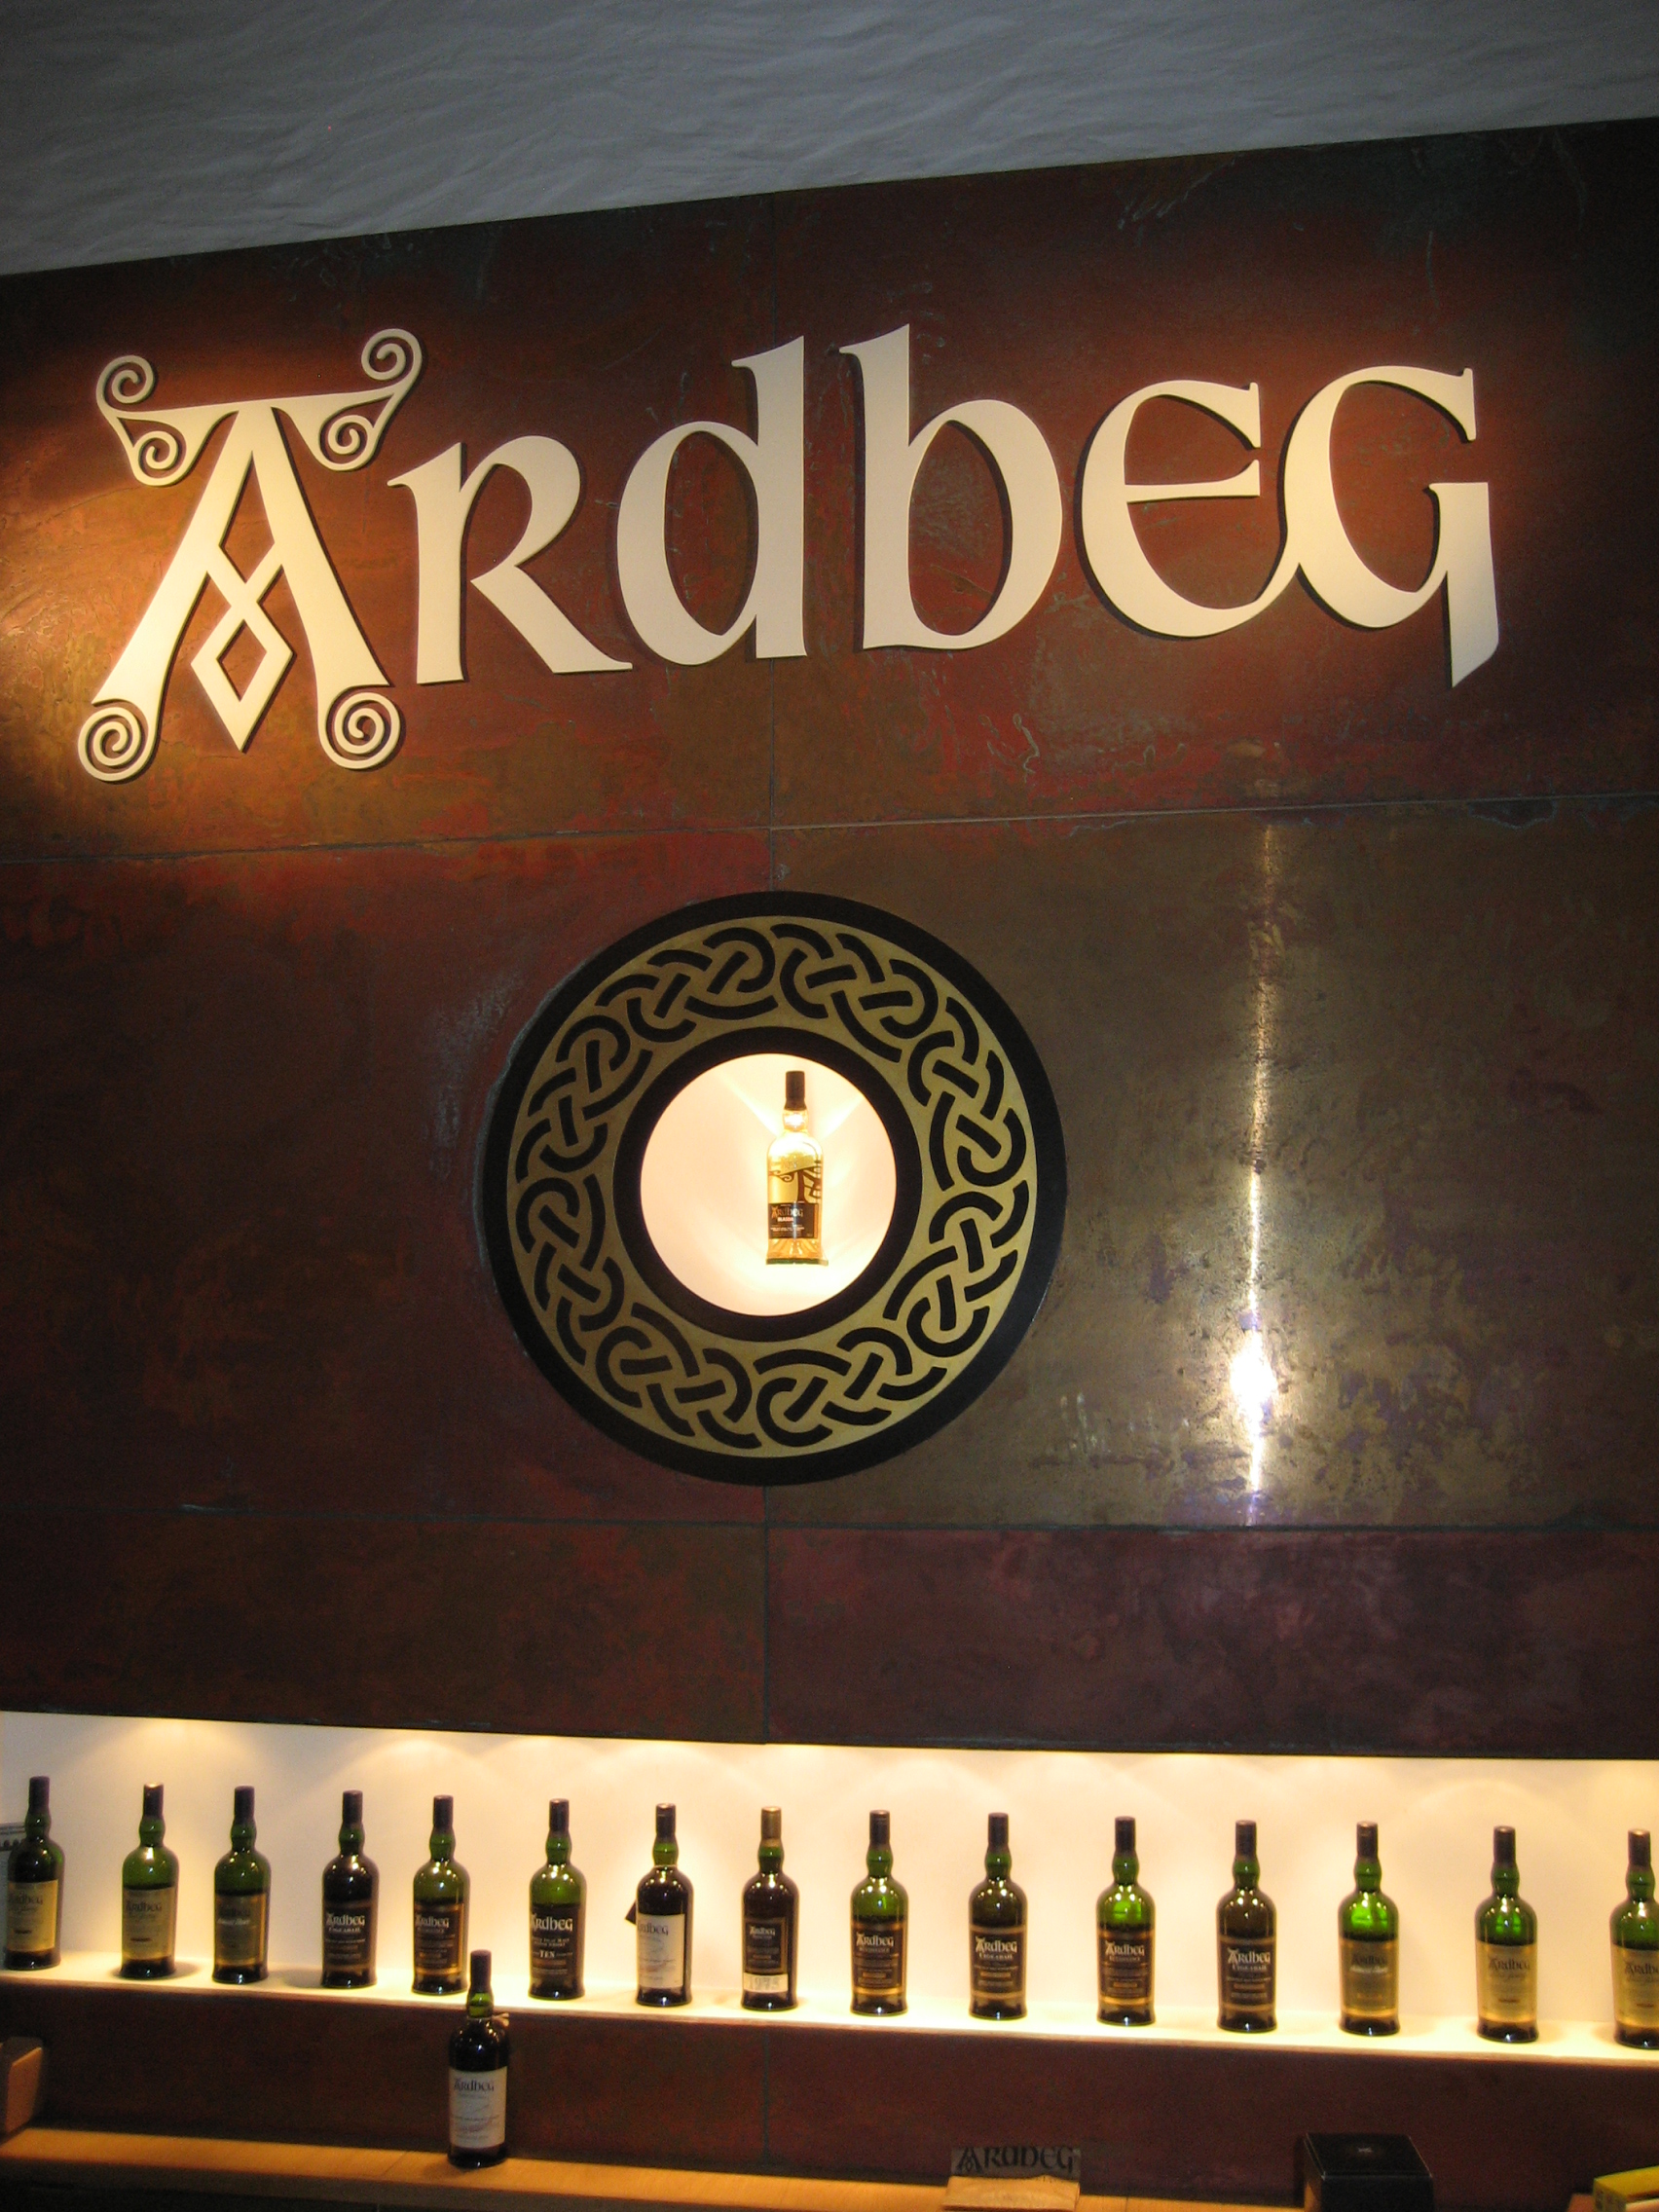 Ardbeg blends the classic with